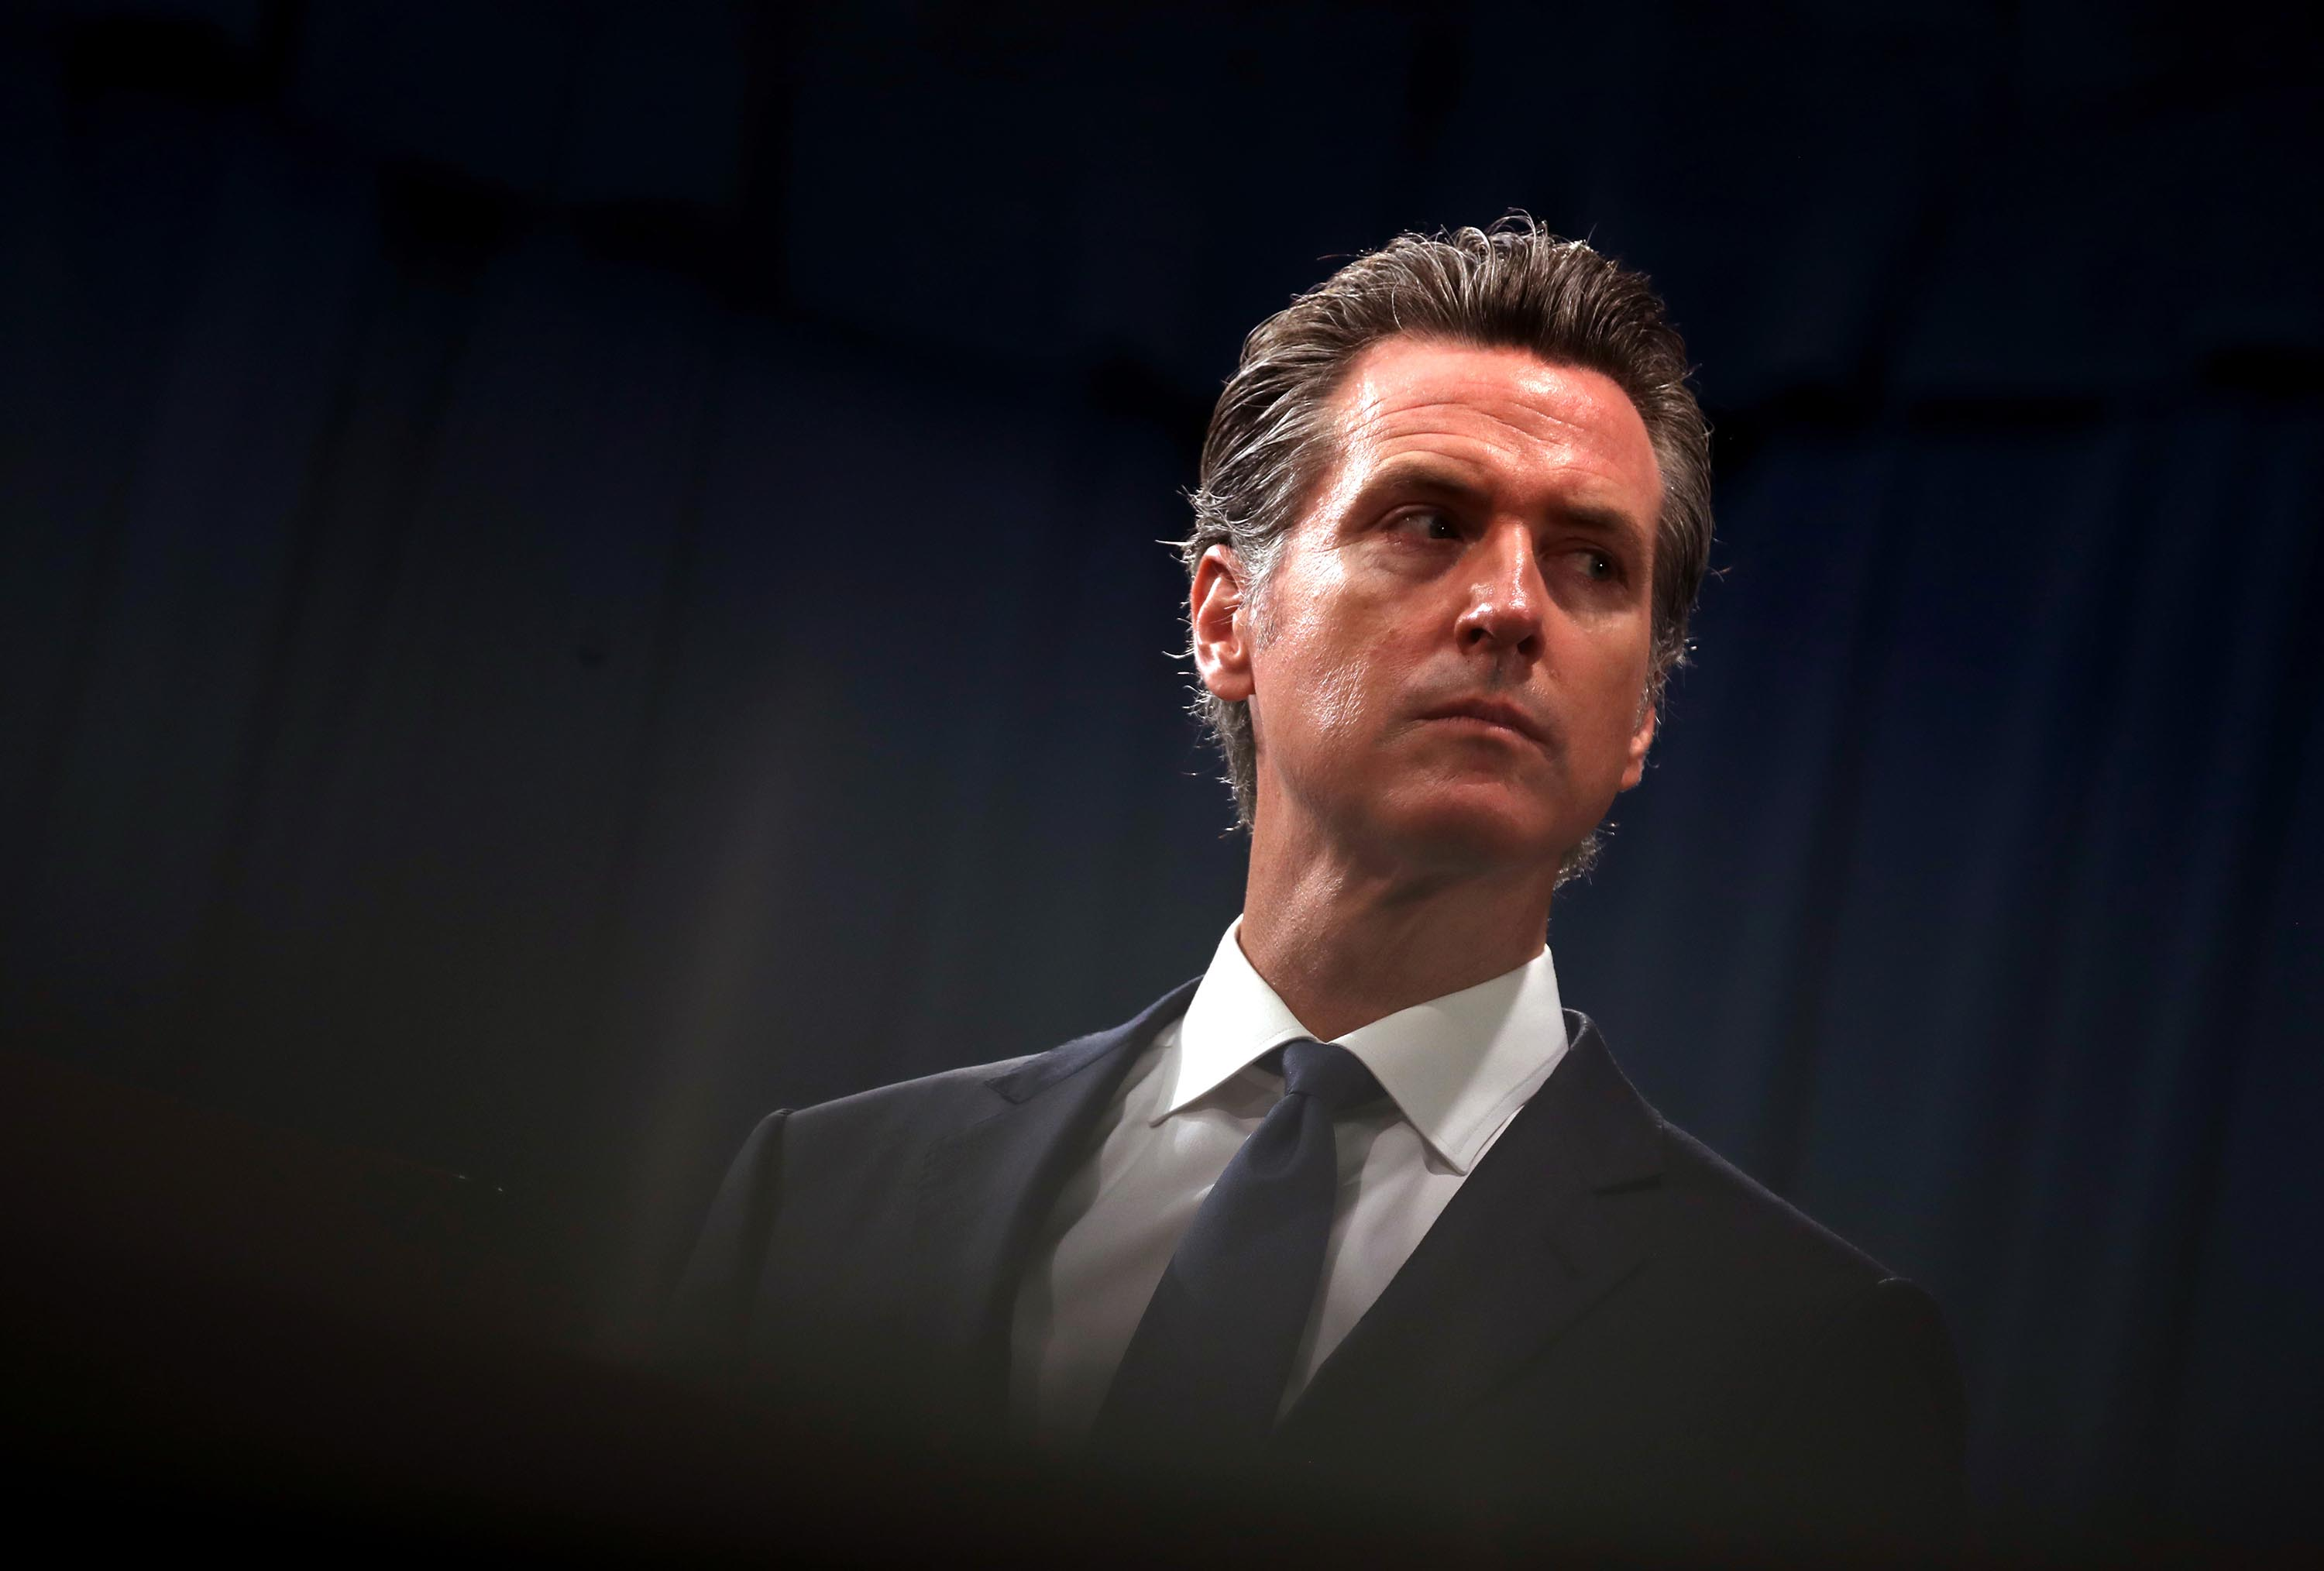 California governor urges state leaders to issue stay-at-home orders: 'What are you waiting for?'